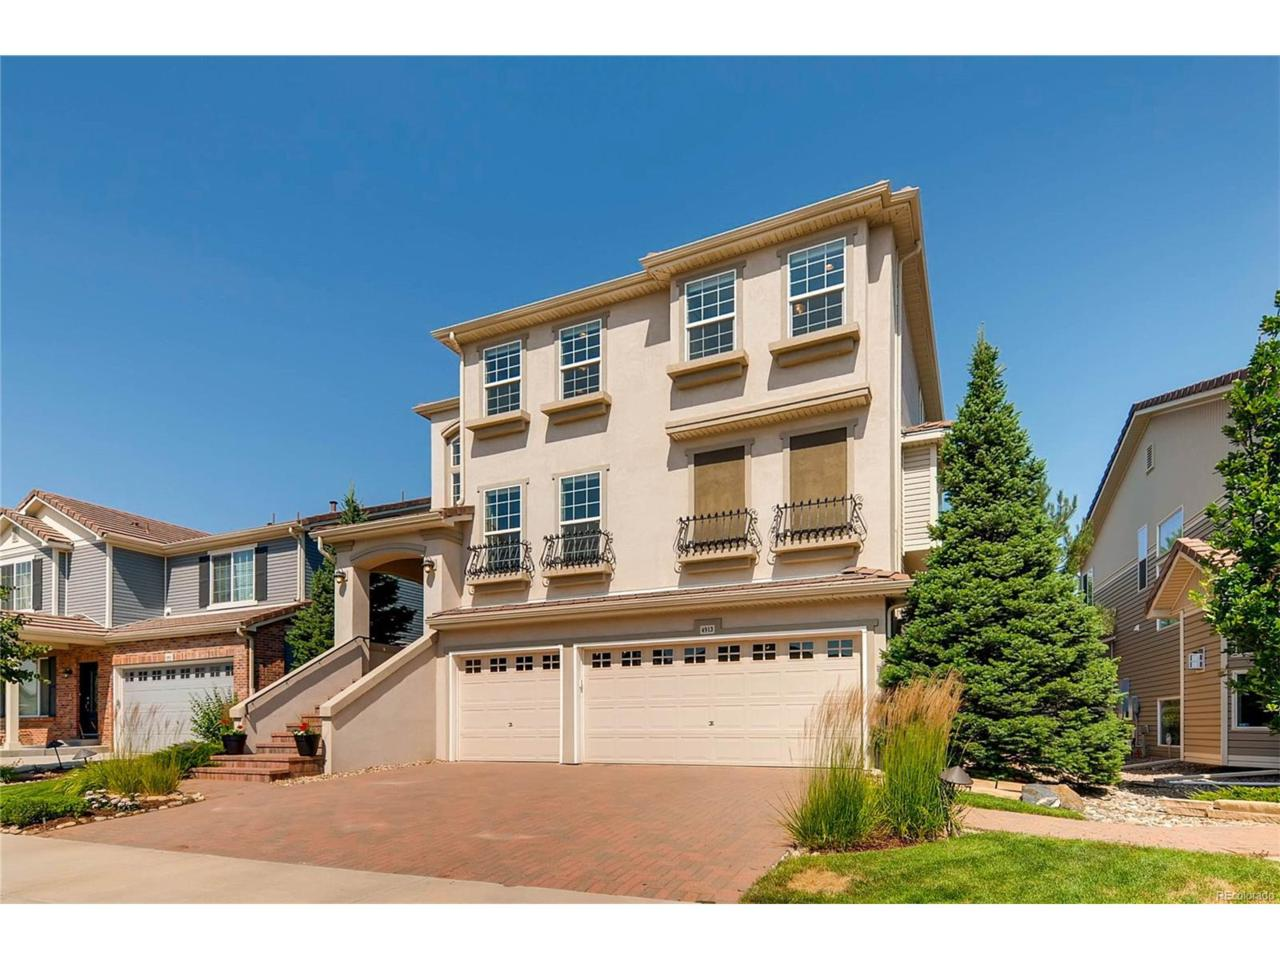 4913 Cathay Court, Denver, CO 80249 (MLS #3345626) :: 8z Real Estate